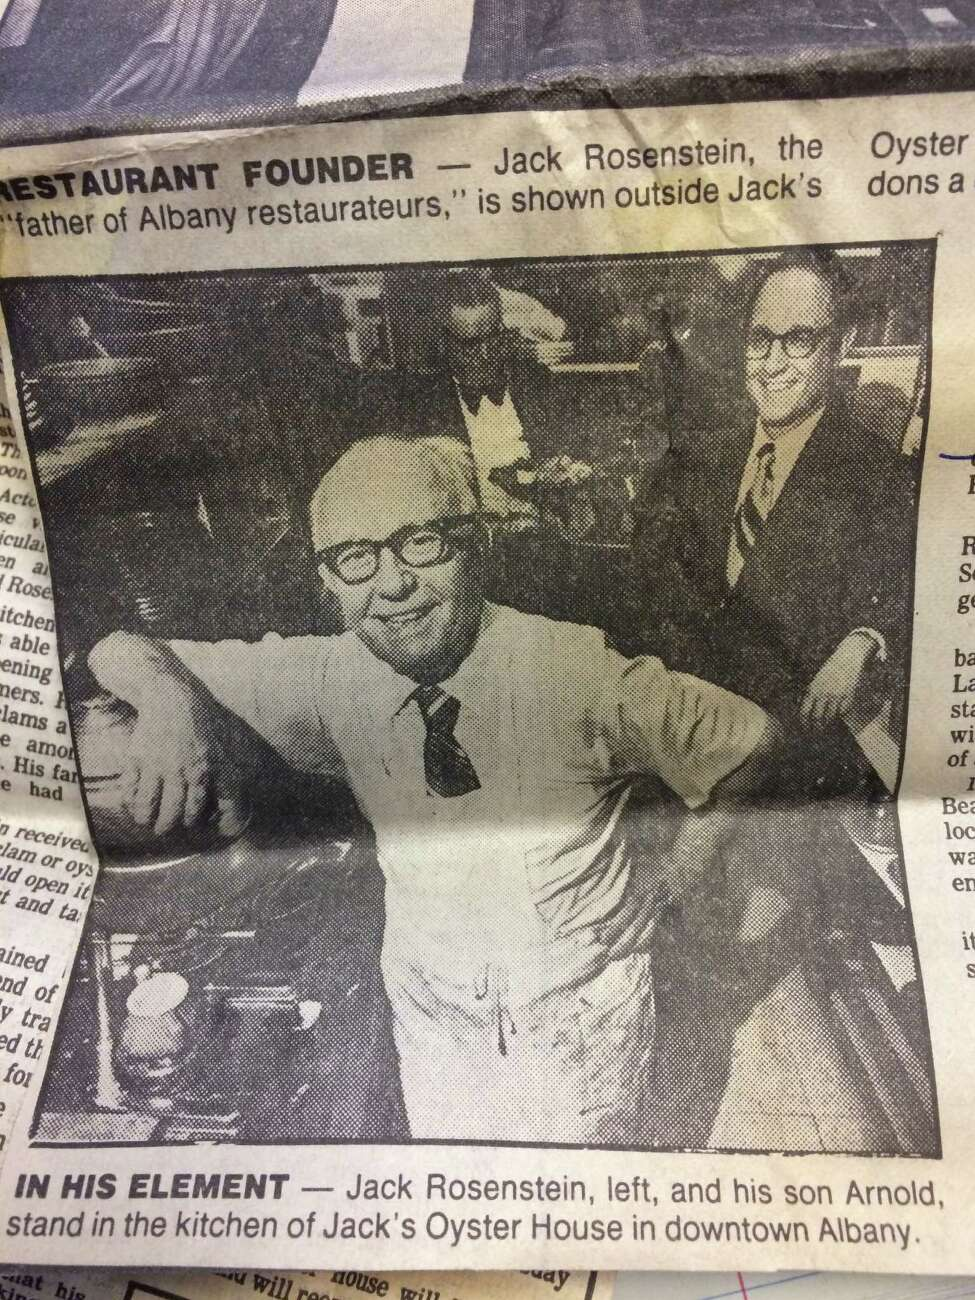 A photo from a 1986 article chronicling the death of Jack's Oyster House founder, Jack Rosenstein. His son Arnold, who died May 22, 2016 at age 94, is pictured at right. (Times Union archive)